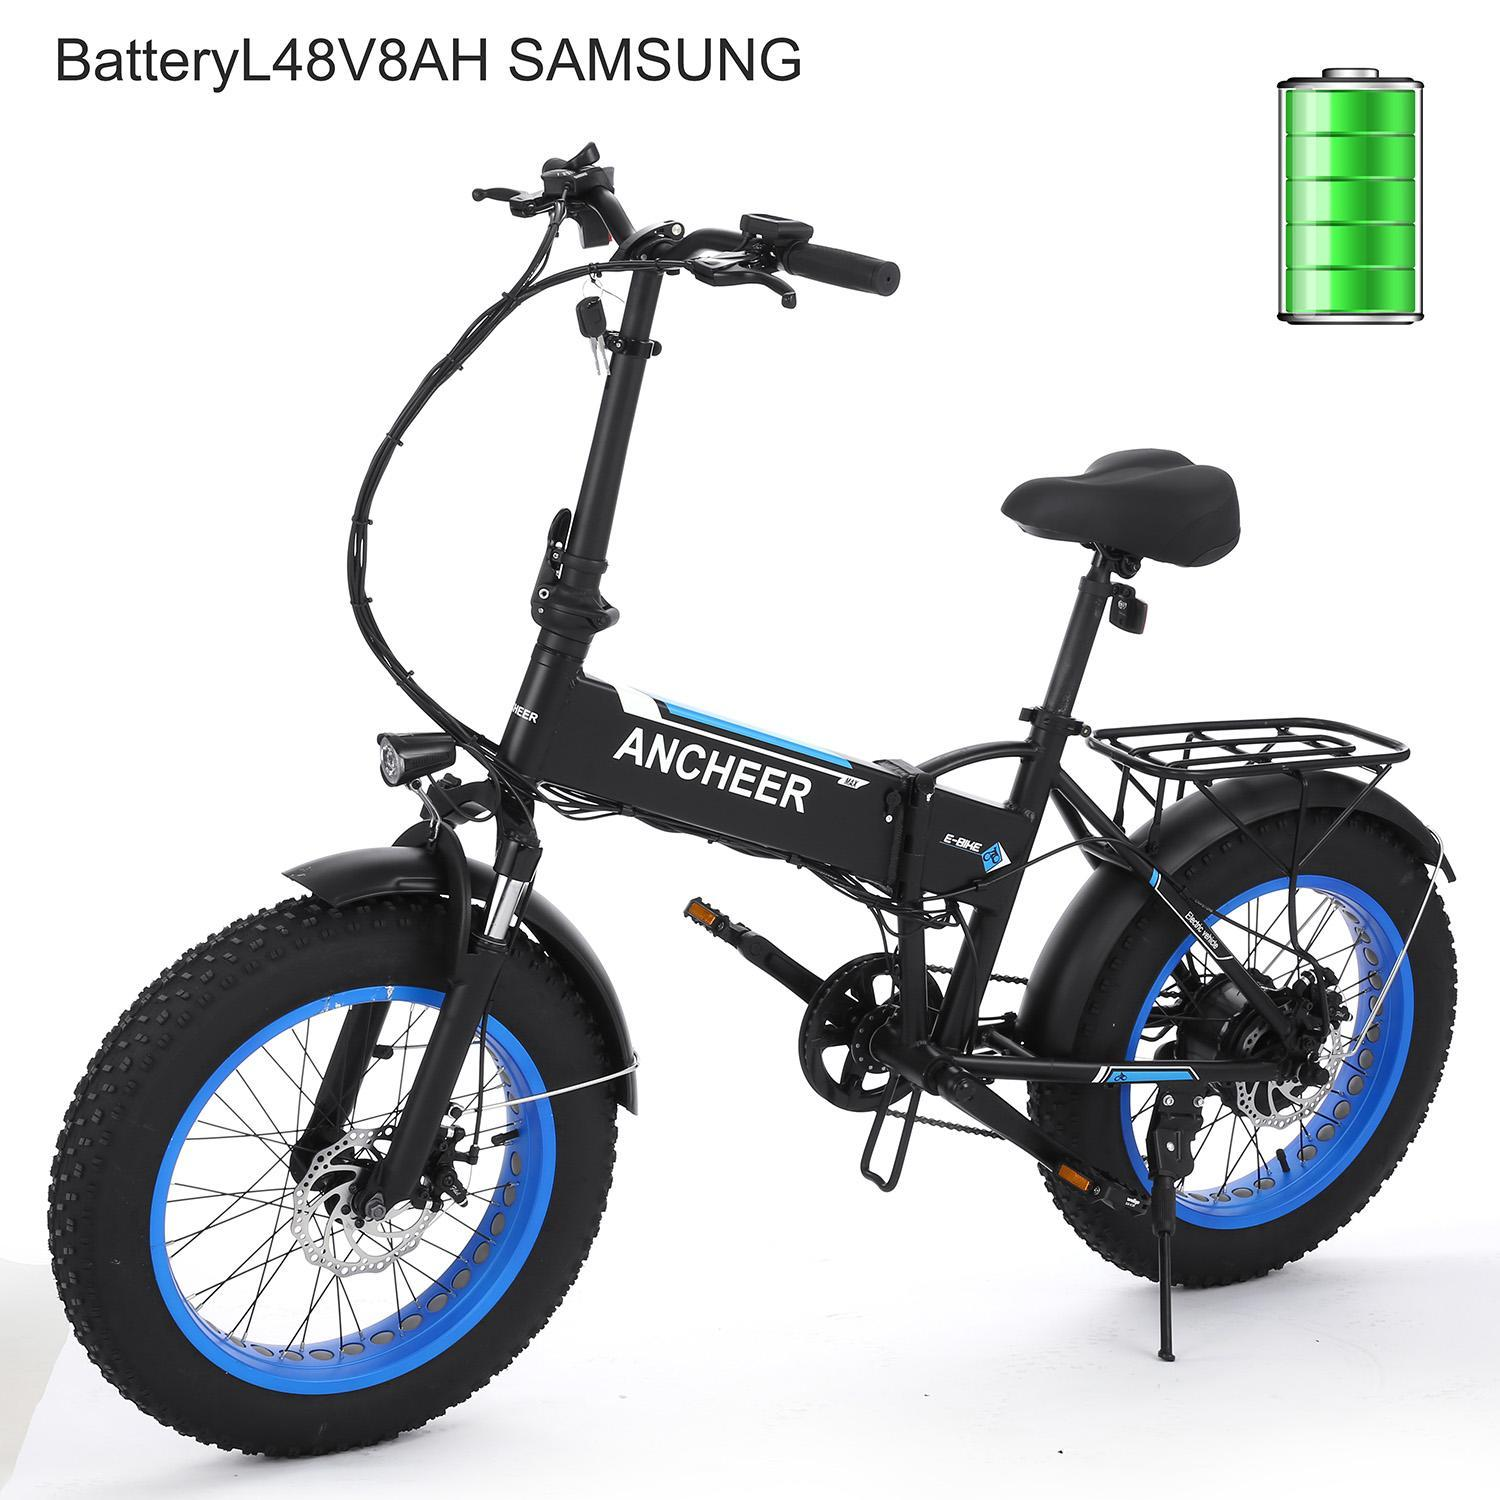 Electric Mountain Bike Fat Tire Folding Bicycle Beach Snow 250W Motor 48V 8AH Battery 6 Speeds by